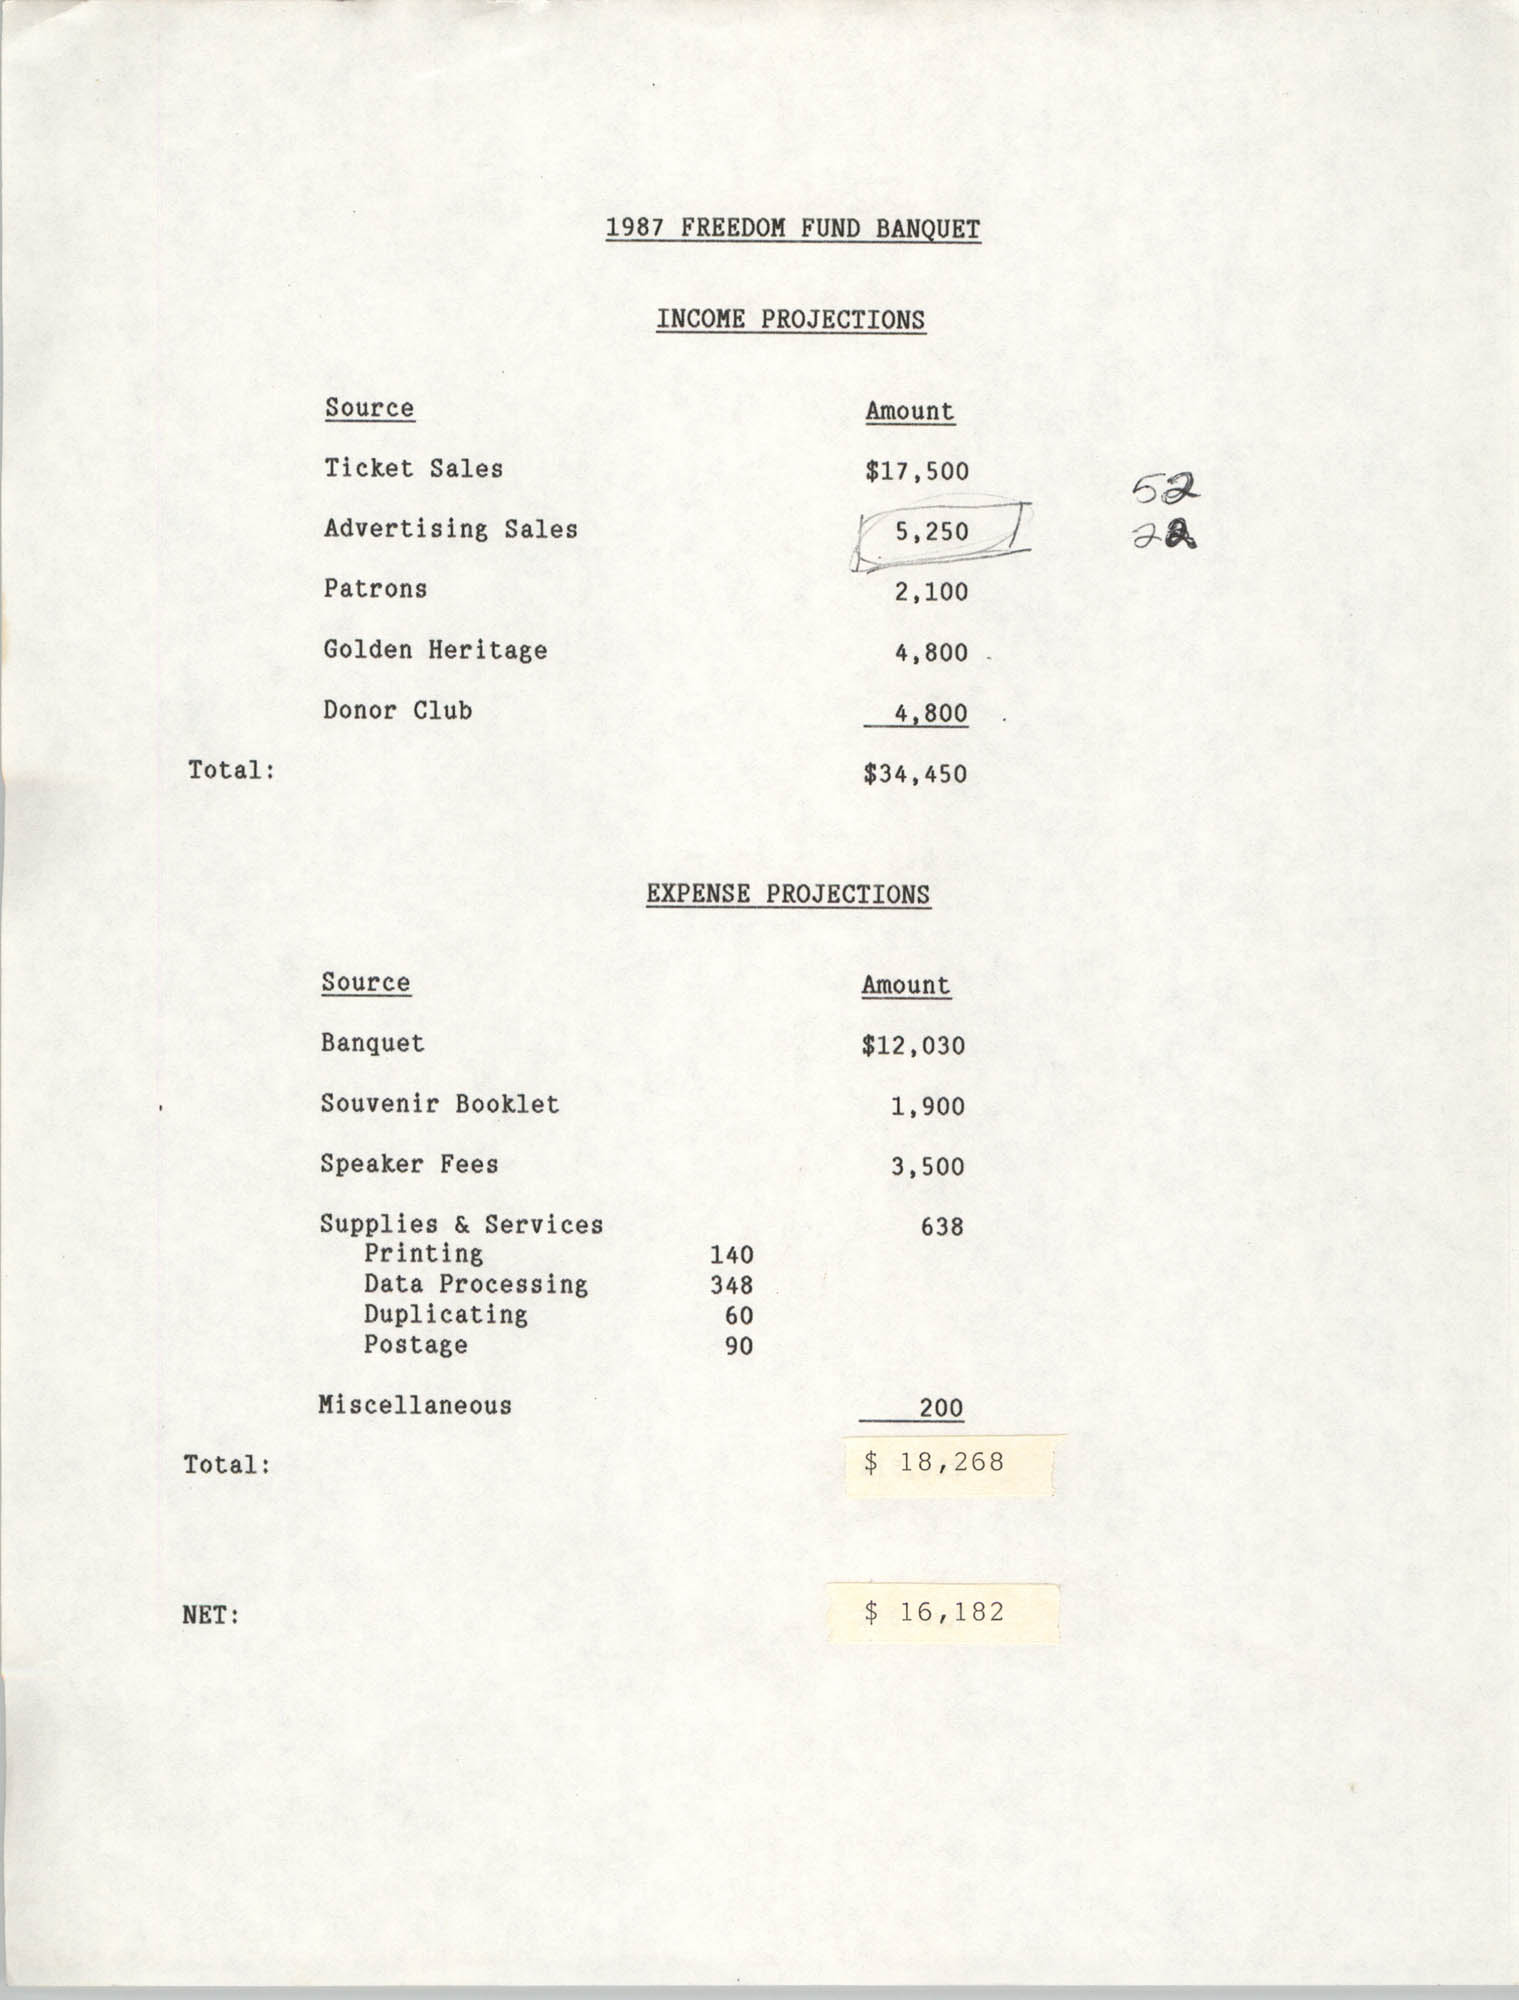 Income and Expense Projections, 1987 Freedom Fund Banquet